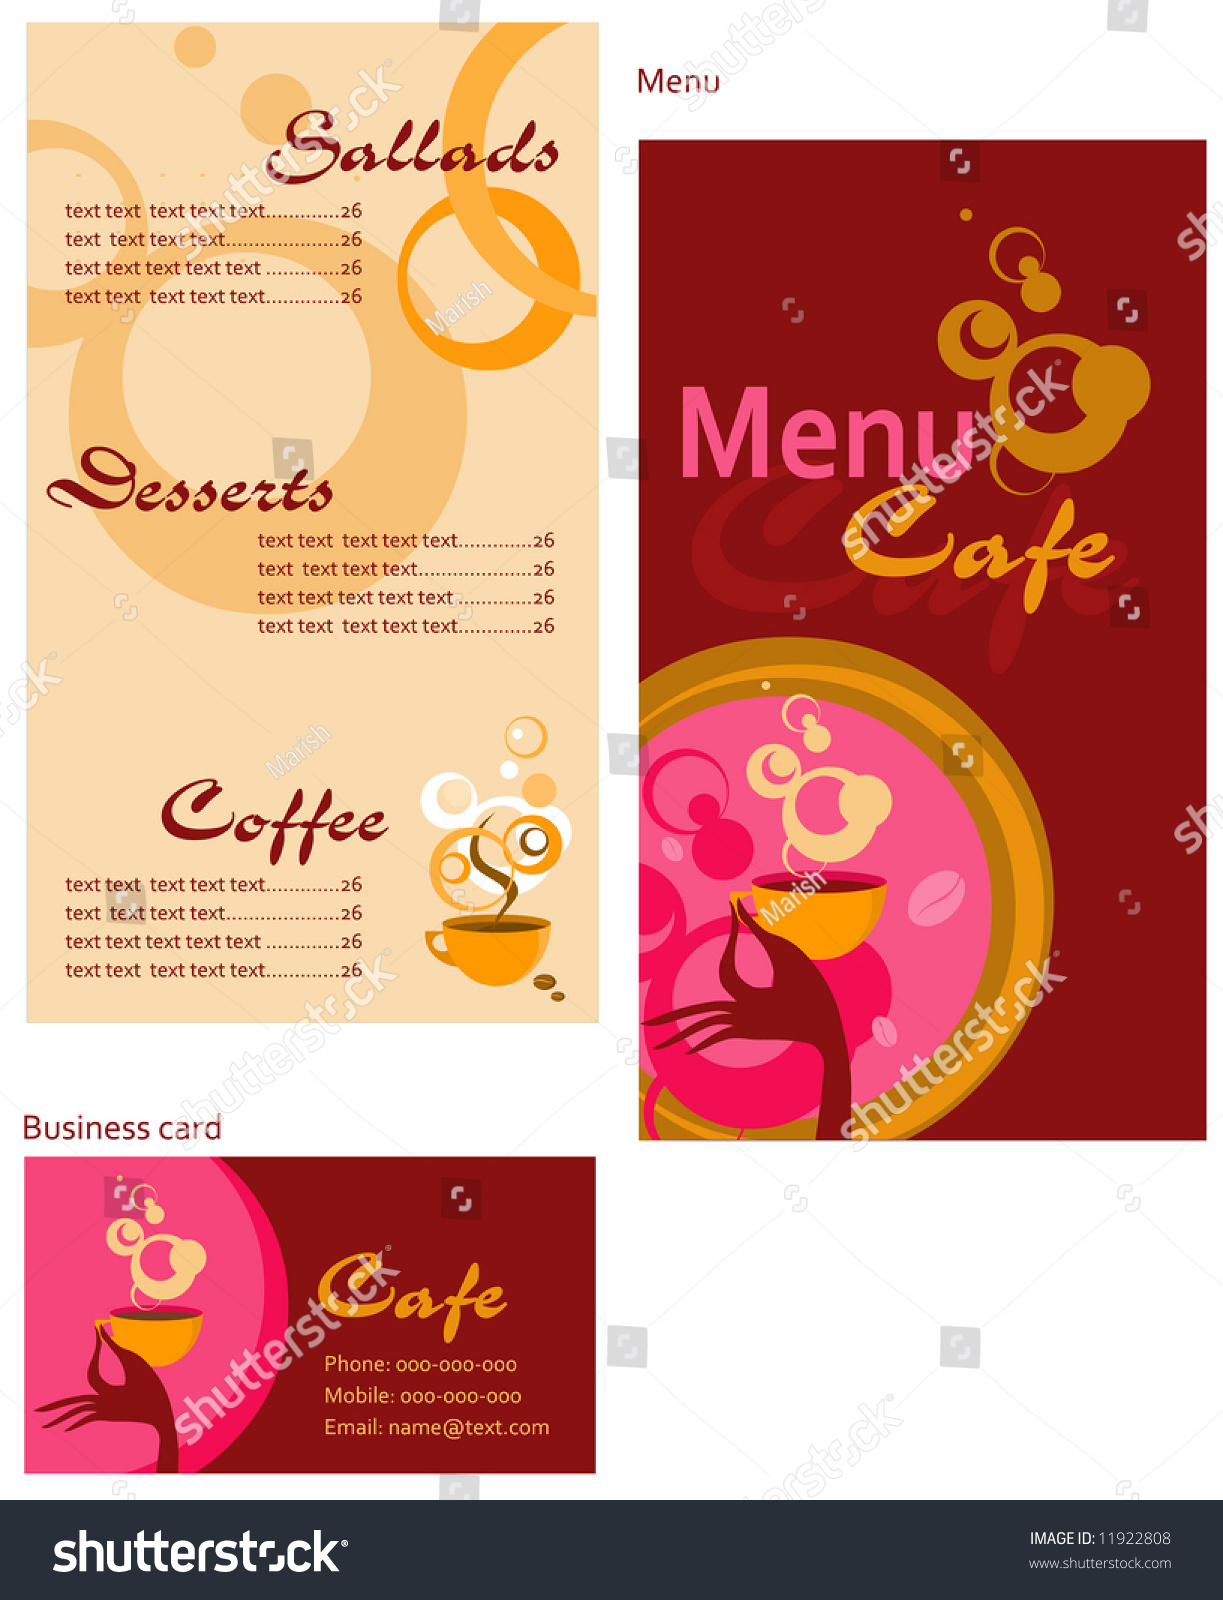 Template Designs Menu Business Card Cafe Stock Vector ...